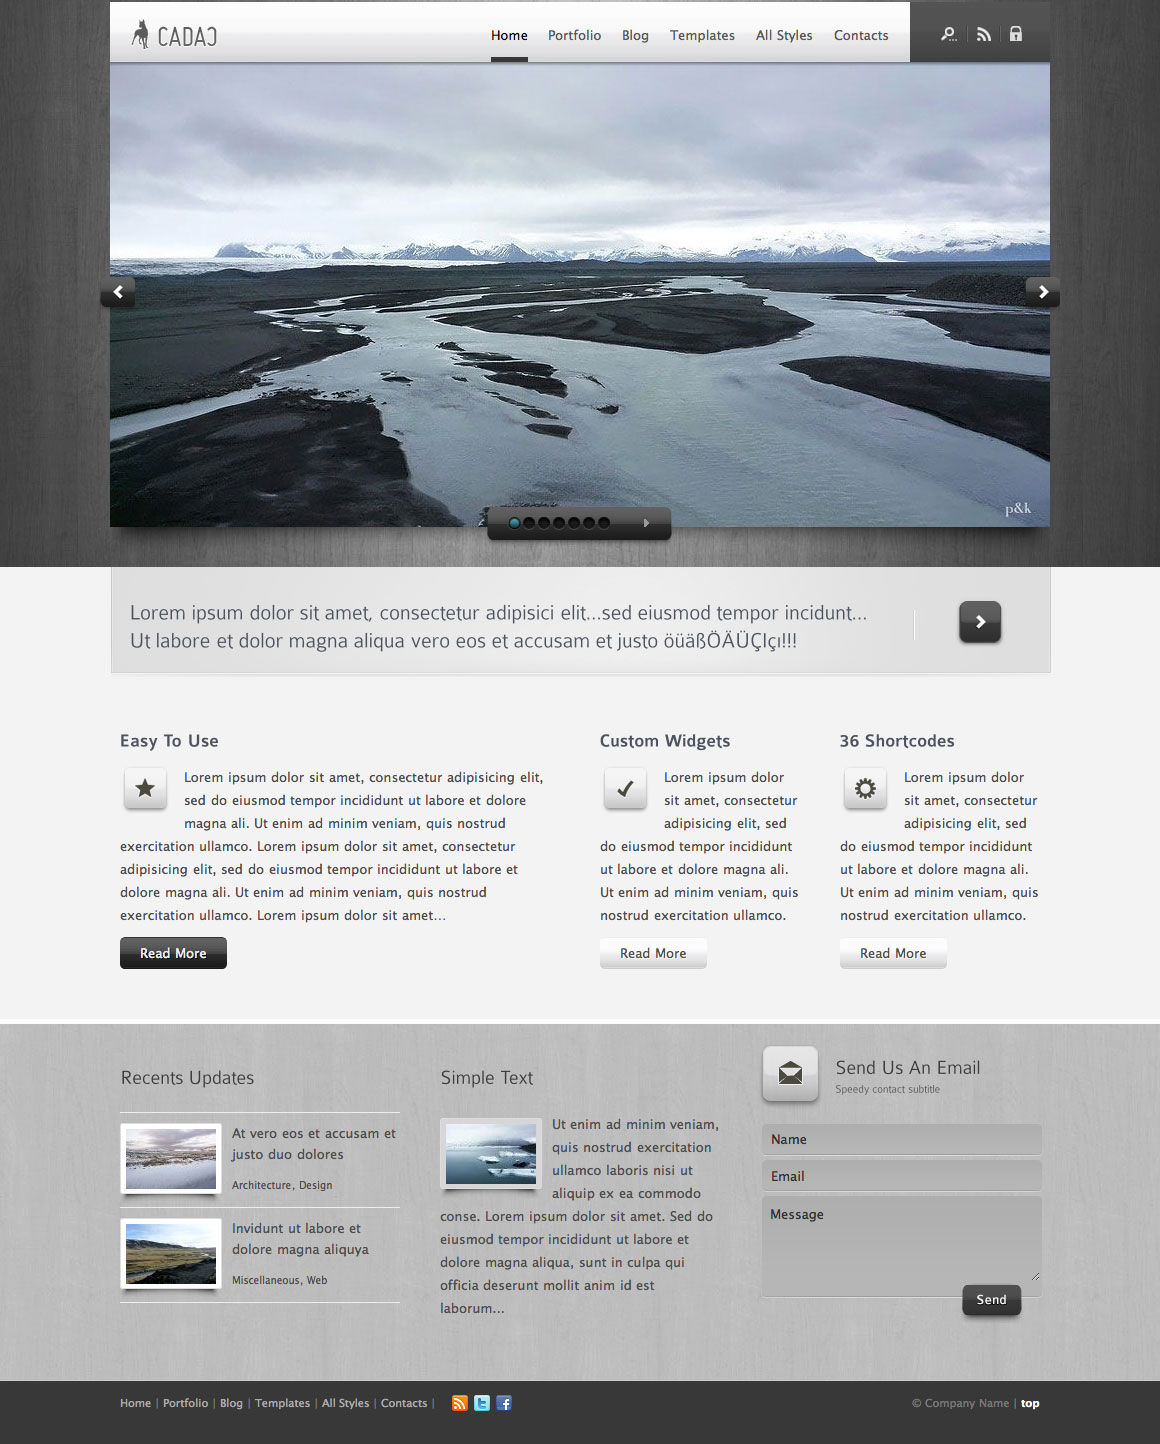 Cadca Wordpress Theme Free Download by ThemeForest.